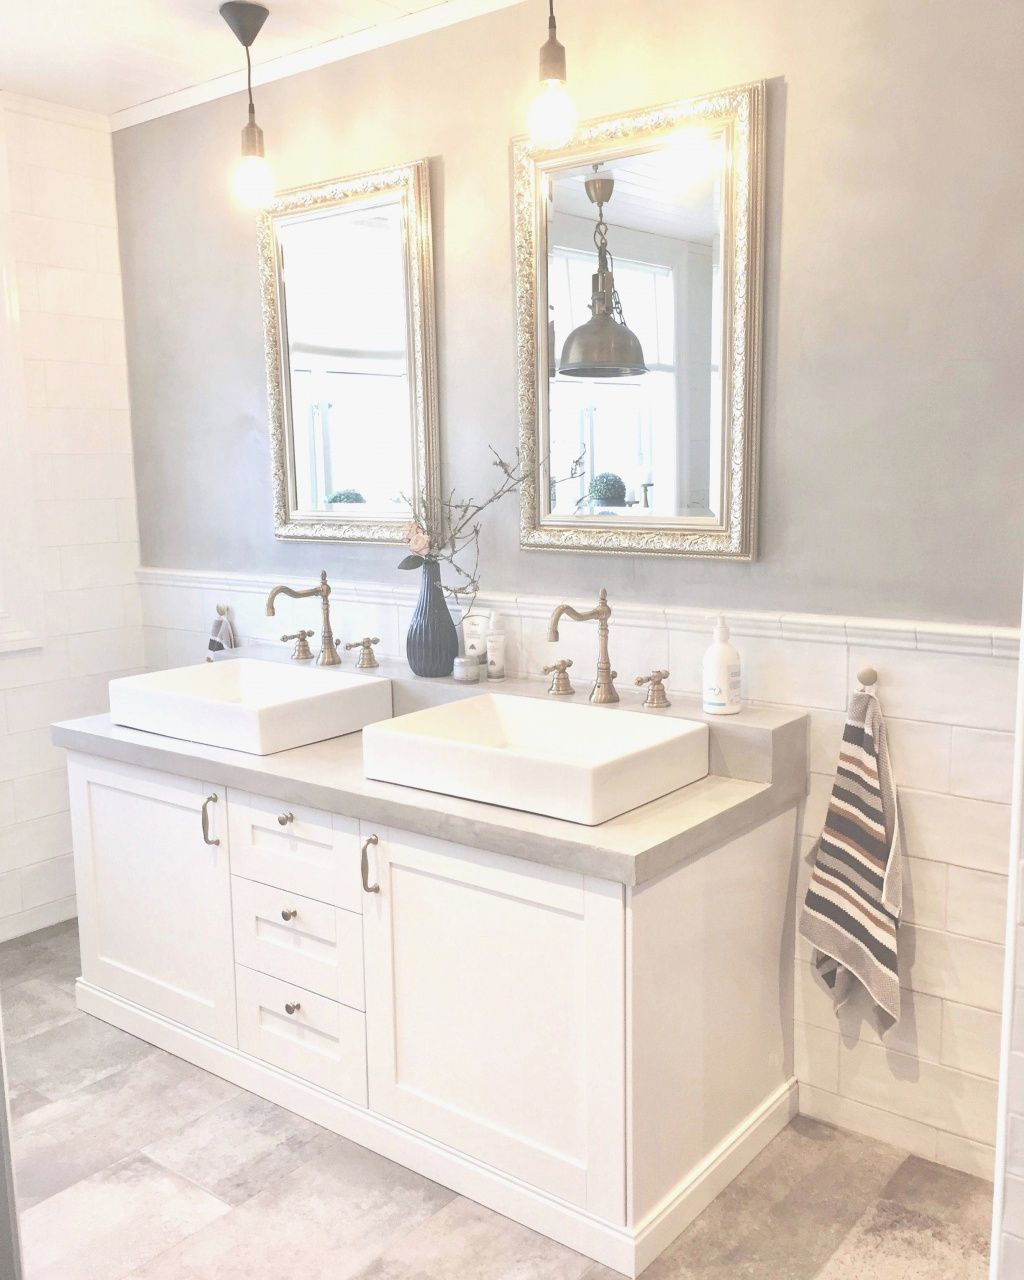 How To Remove A Bathroom Countertop How To Remove A Bathroom